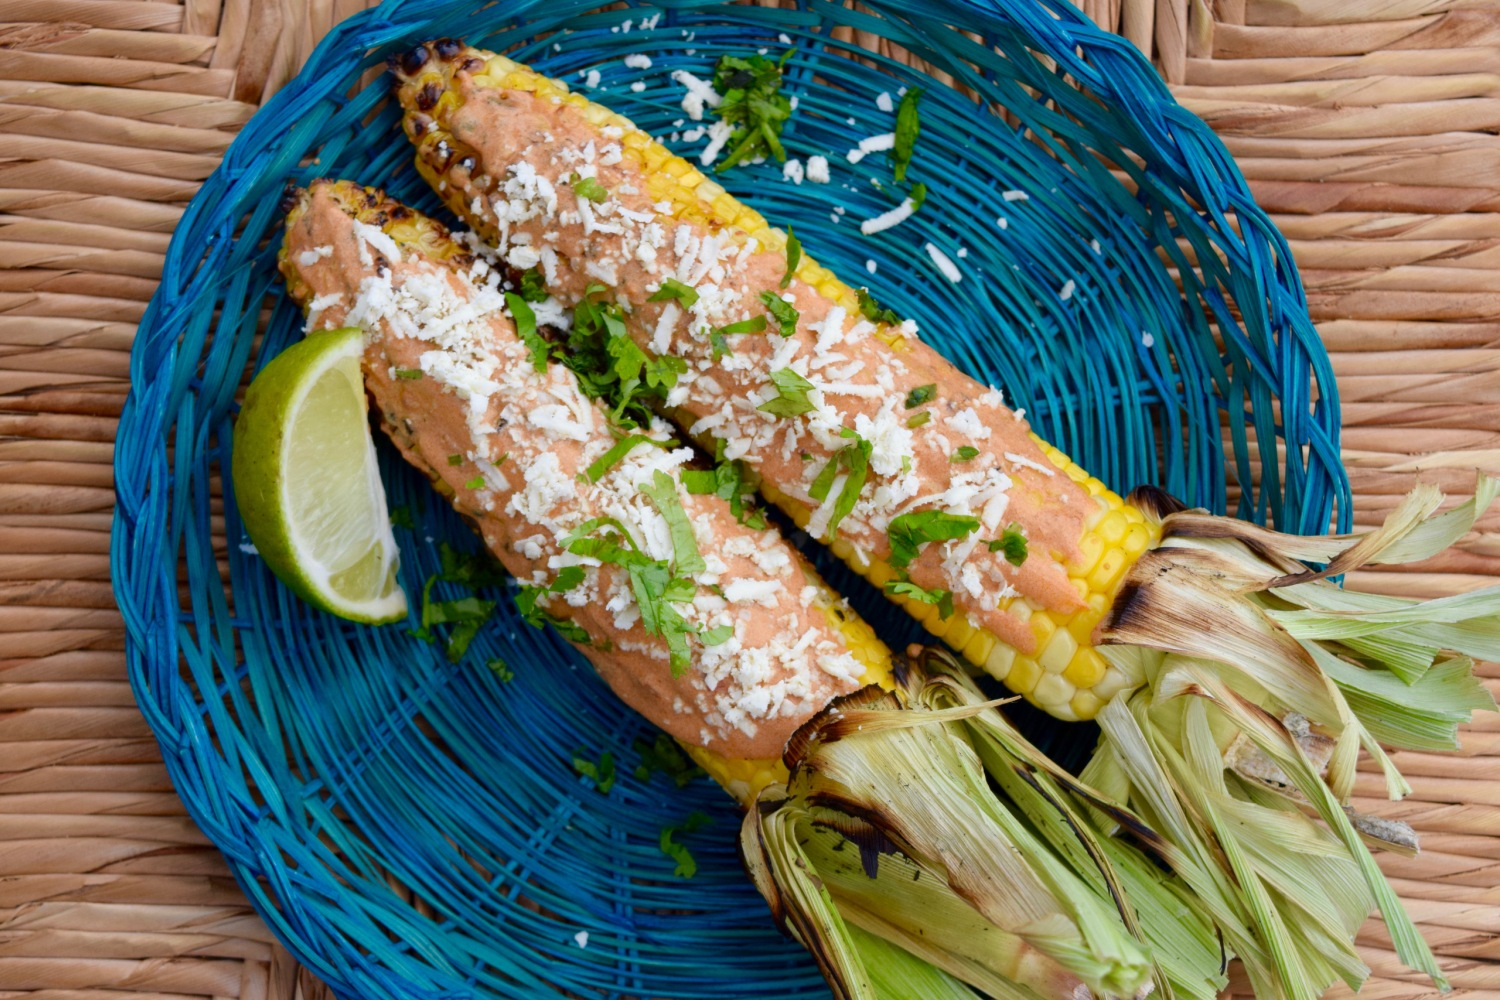 Elotes Asados con Aderezo Guajillo (Grilled Corn on the Cob with Guajillo Dressing)